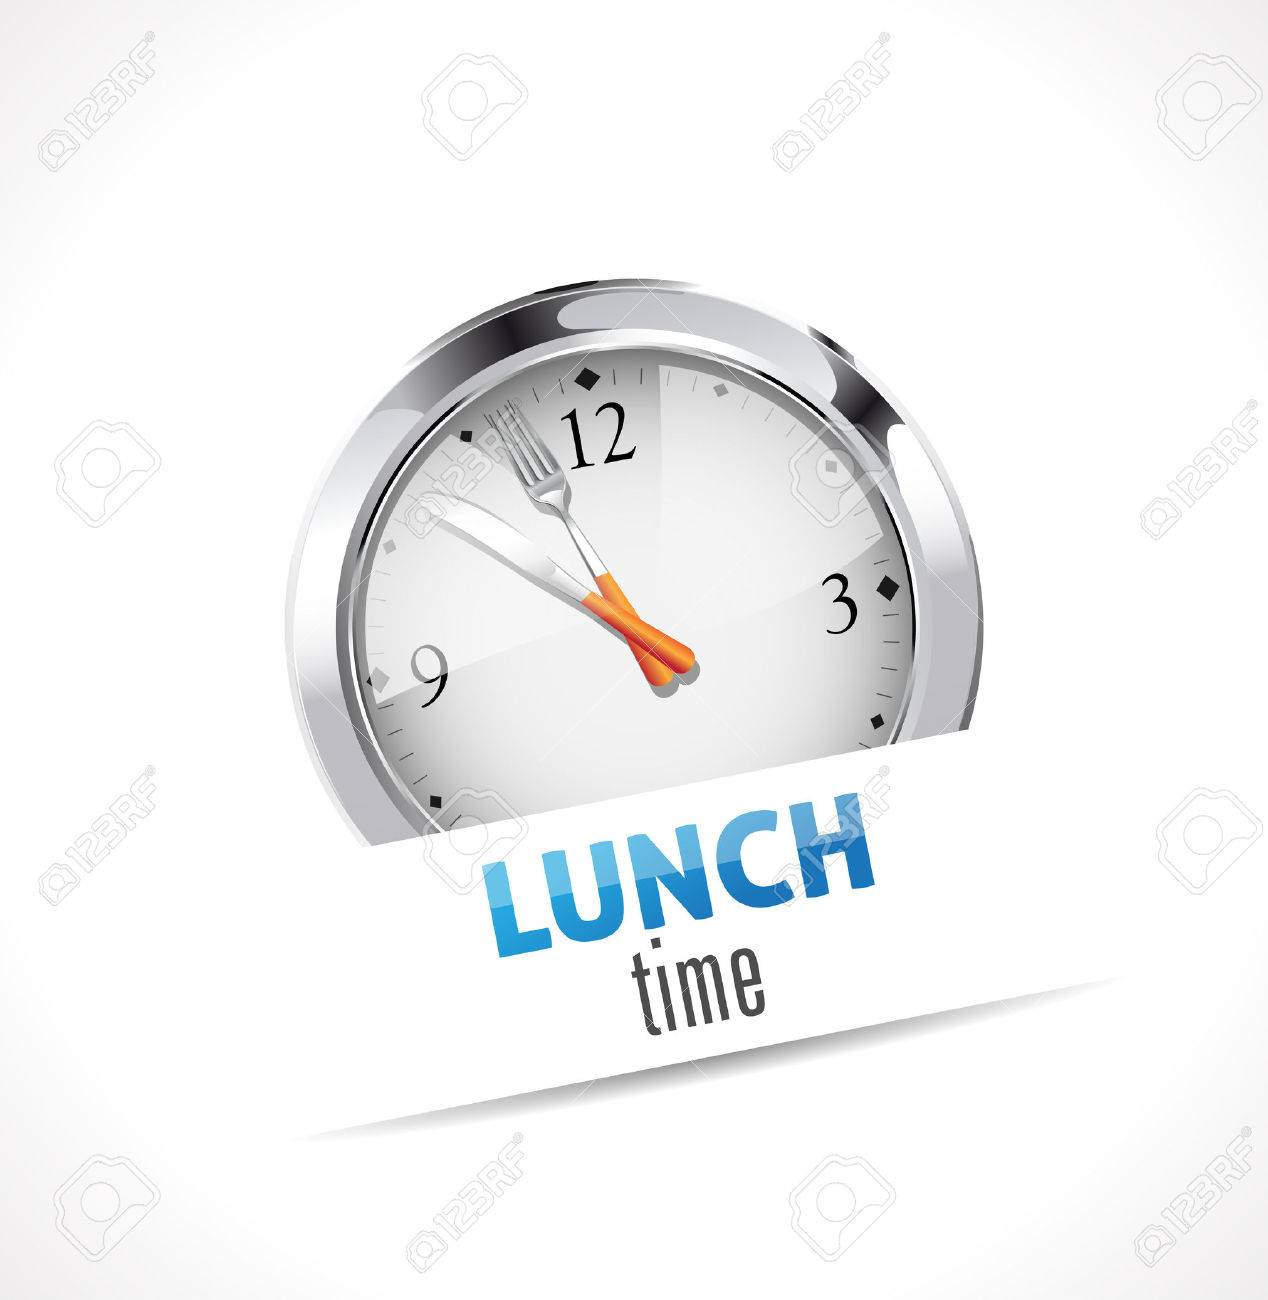 Stopwatch - Time for Lunch - 48445274